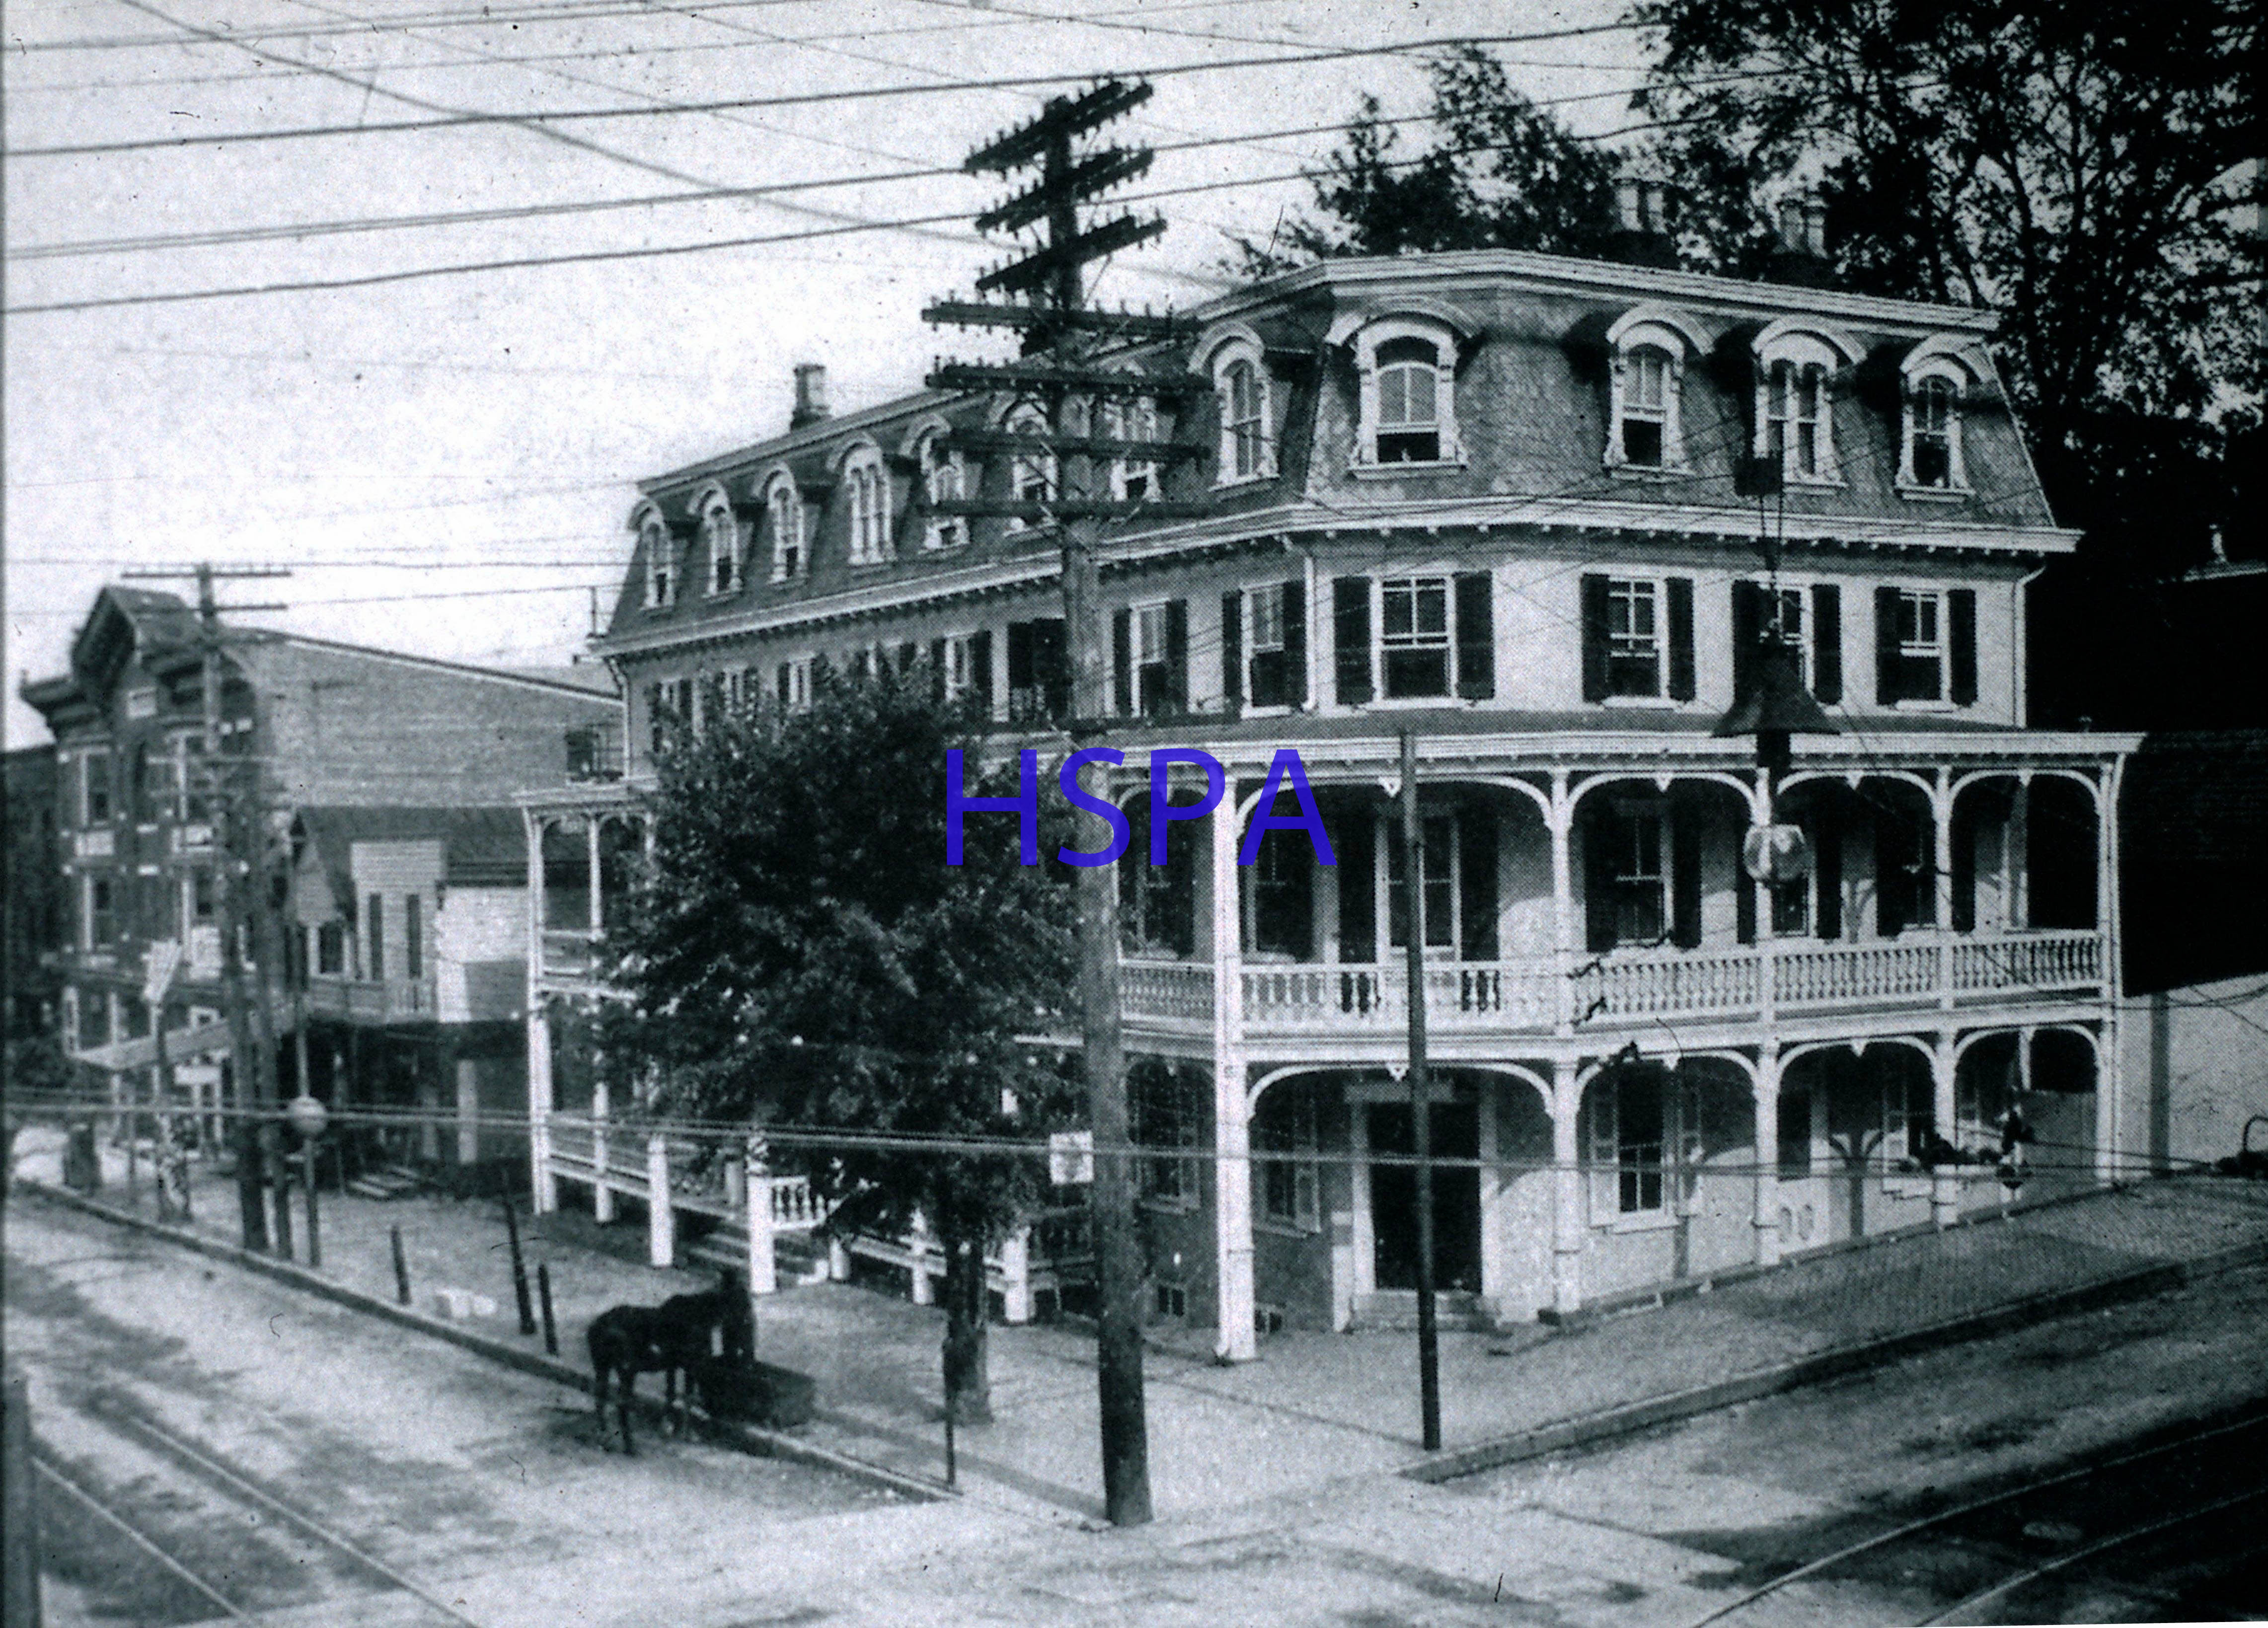 Phoenix Hotel Main Bridge Streets C 1910 It Was Built In 1836 By The Iron Co